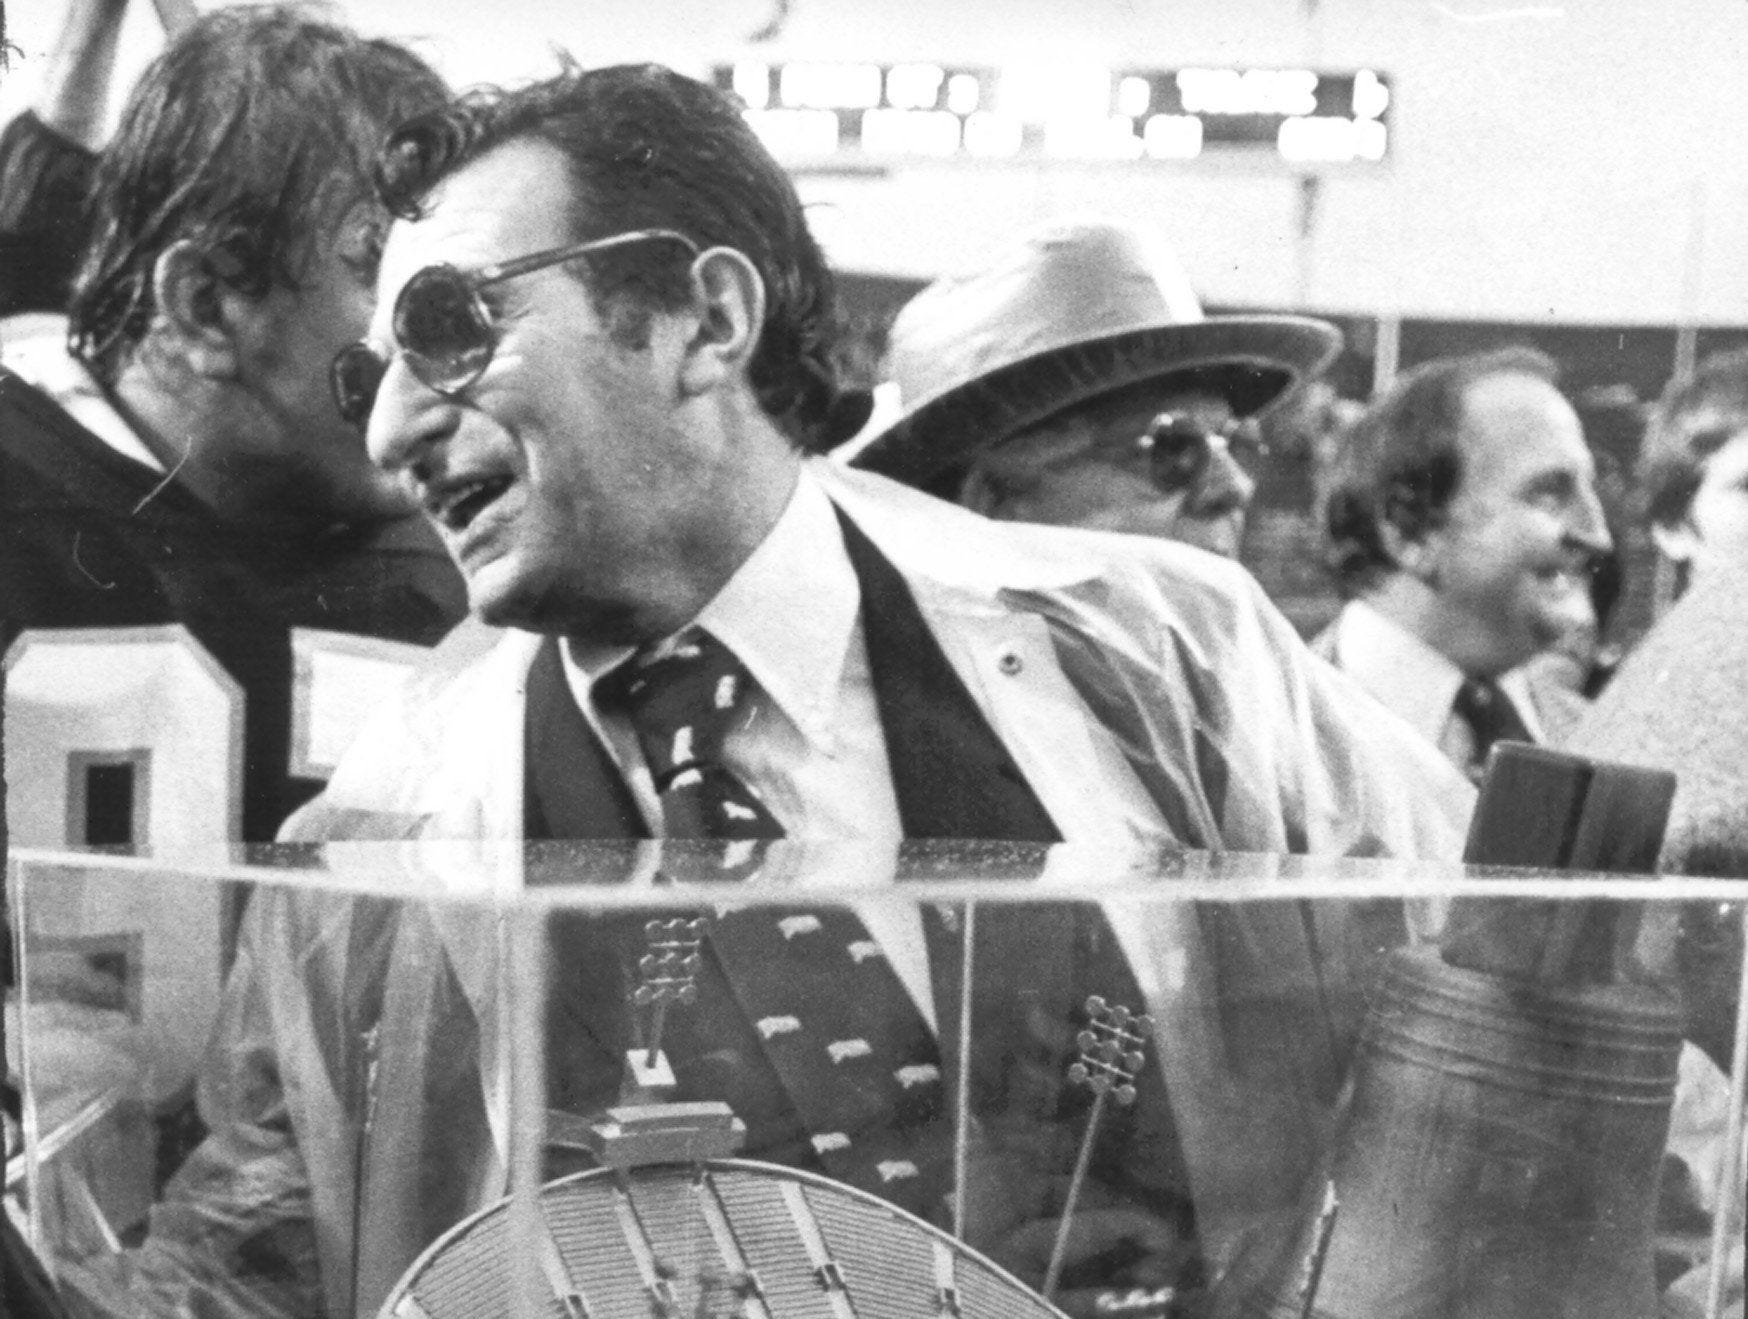 Penn State University head coach Joe Paterno is all smiles after his Nittany Lions defeated Tulane in the Liberty Bowl on Dec. 22, 1979, by a score of 9-6. The winning margin came on a field goal by Herb Menhardt with 18 seconds left in the game.  Dave Darnell / The Commercial Appeal Penn State University head coach Joe Paterno was all smiles after his Nittany Lions defeated Tulane in the Liberty Bowl on 22 Dec 1979 by a score of 9 to 6. The winning margin came on a field goal by PSU kicker Herb Menhardt with 18 seconds left in the game.